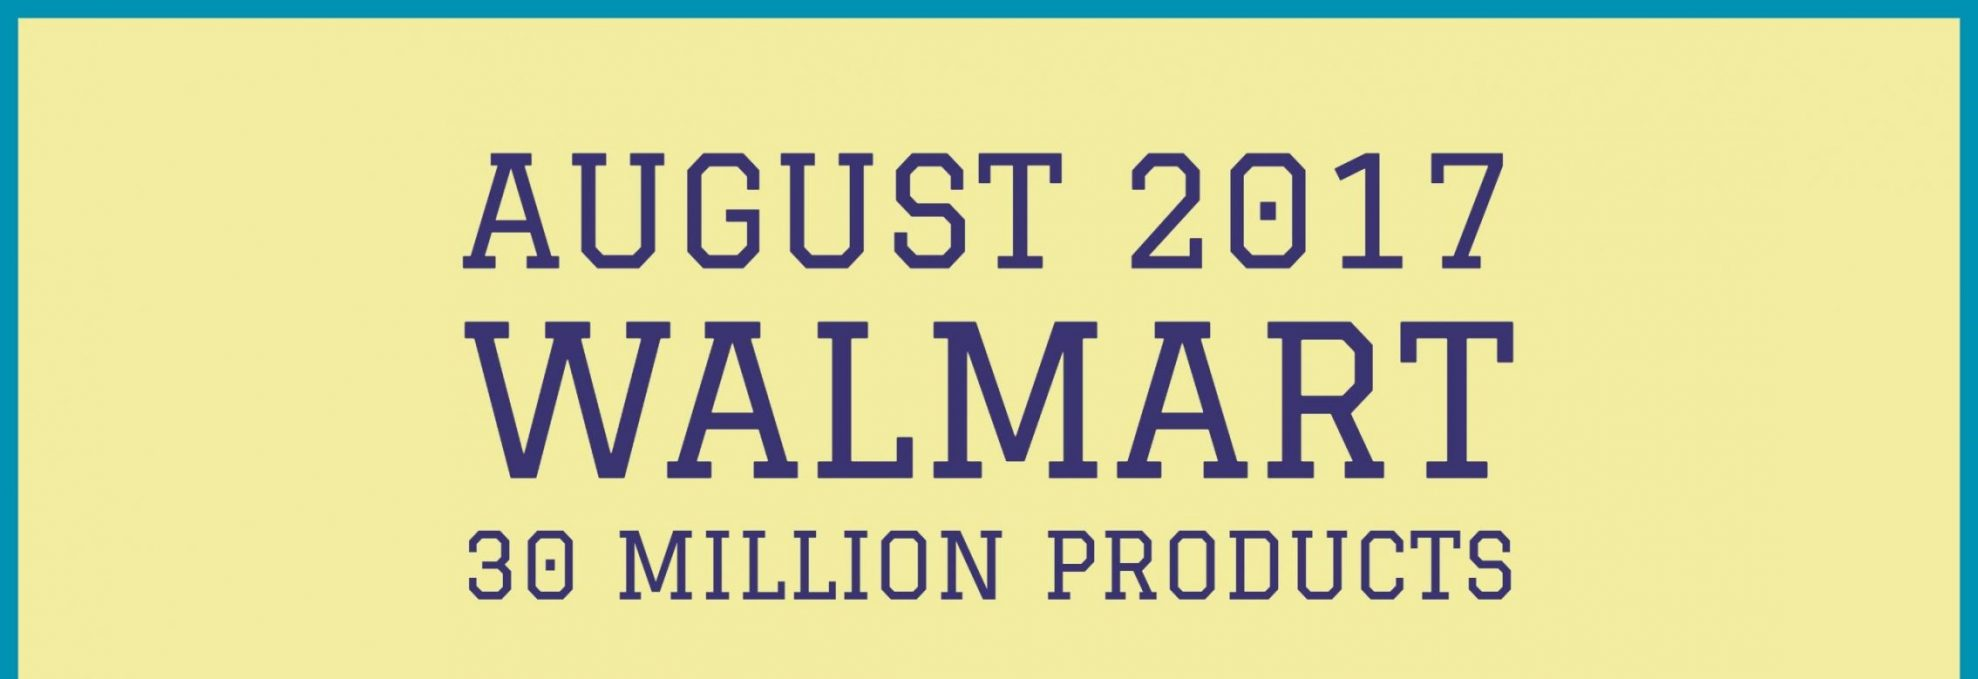 Amazon vs Walmart- Products Sold in August 2017